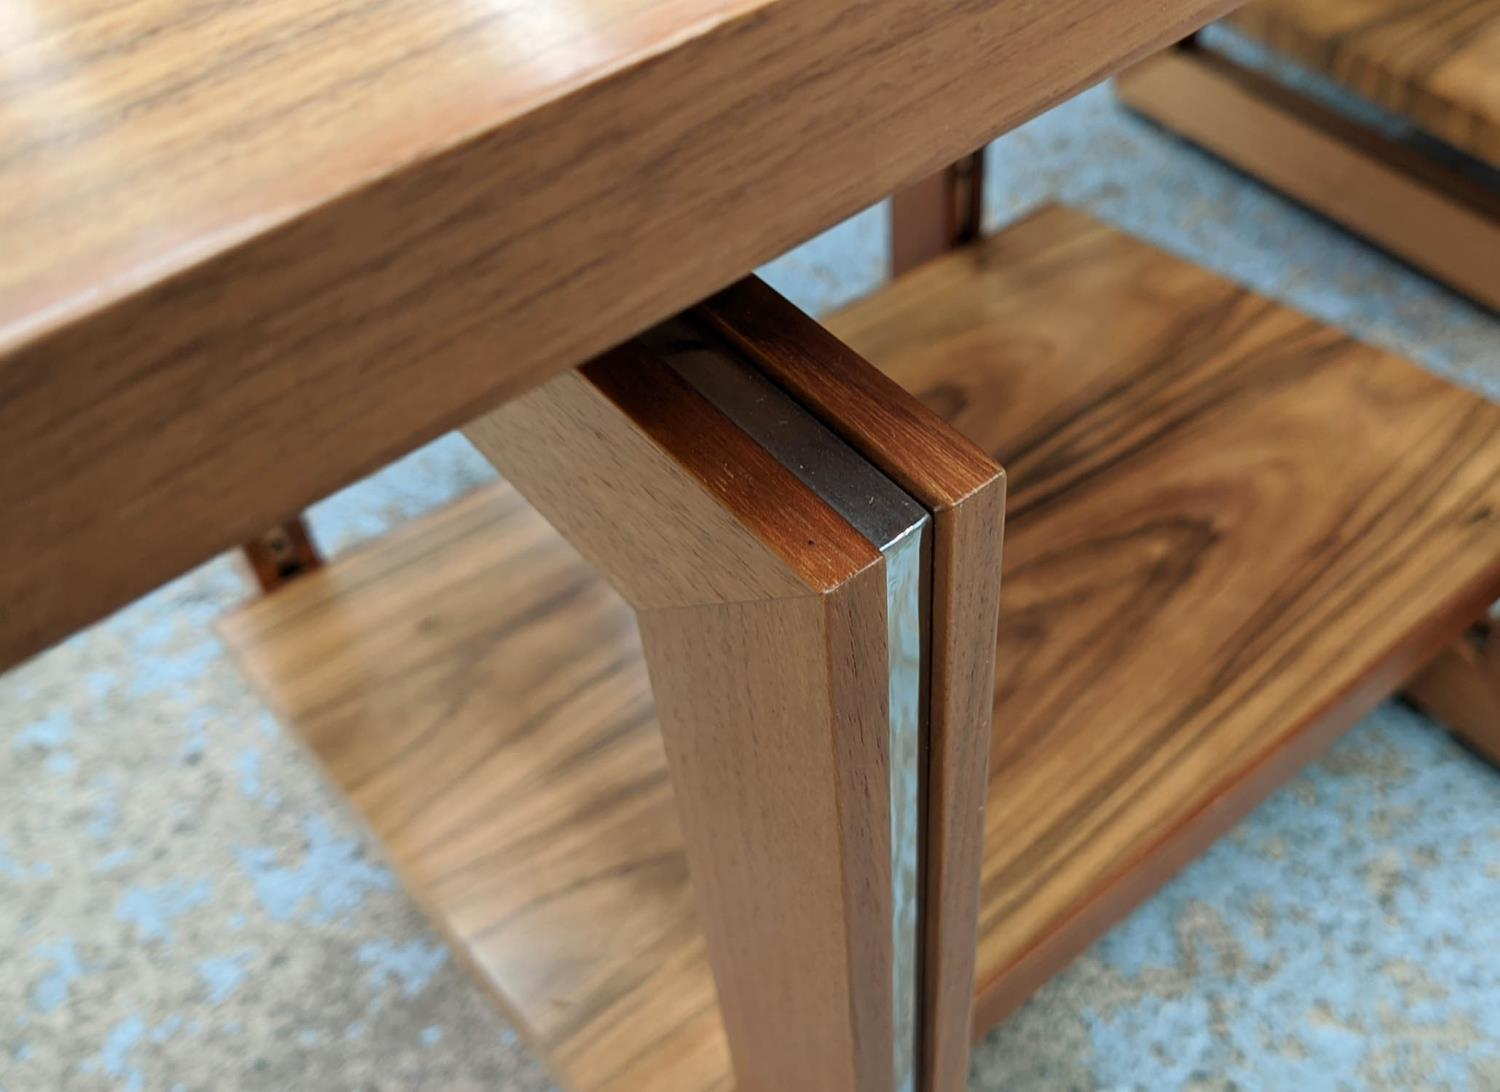 LINLEY HELIX SIDE TABLES, a pair, by David Linley, 65cm x 45cm x 55.5cm. (authenticated by linley) - Image 3 of 4